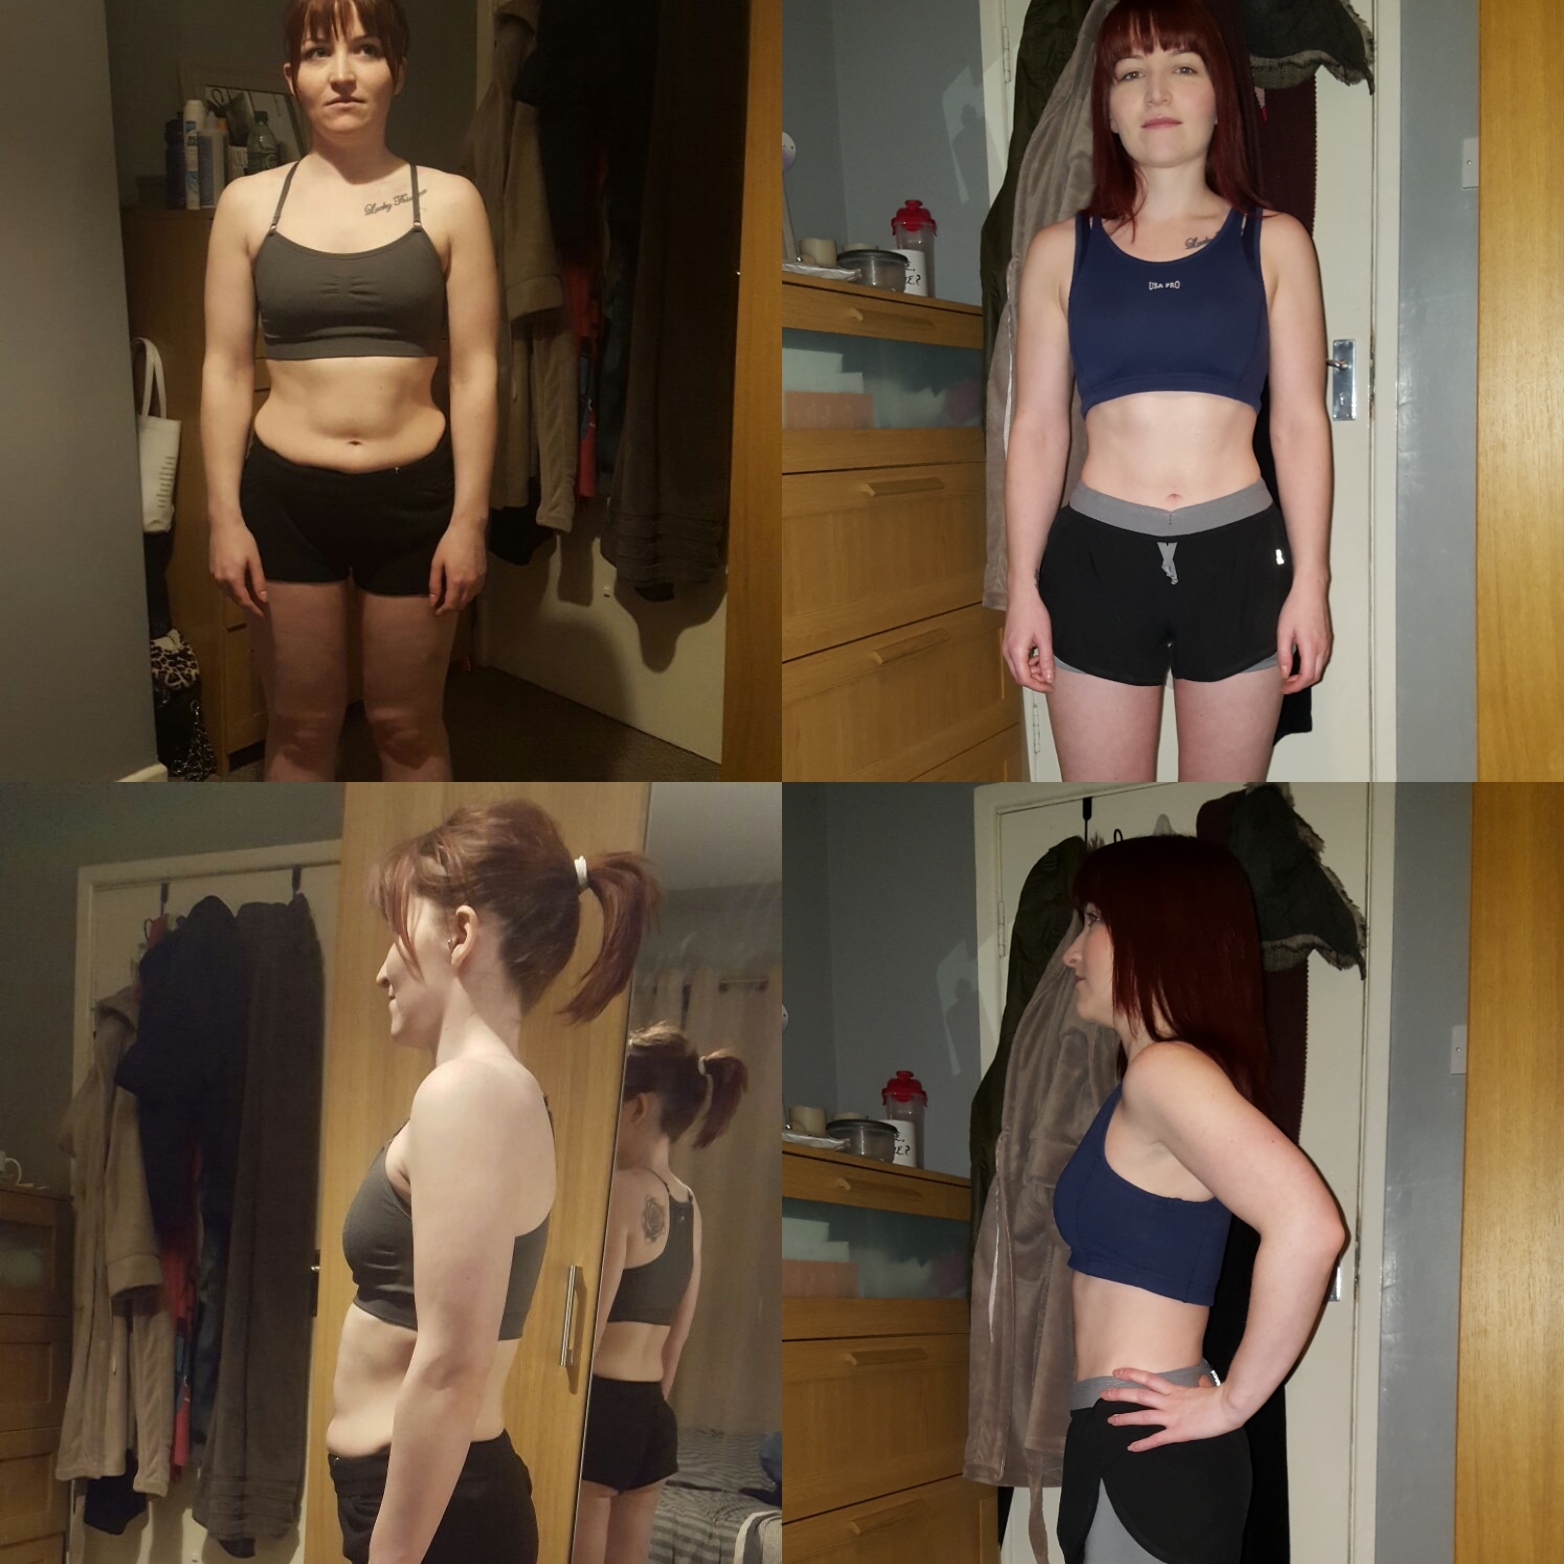 Pictures of Wee Jen Ken showing a comparison of before and after six months of training at the gym